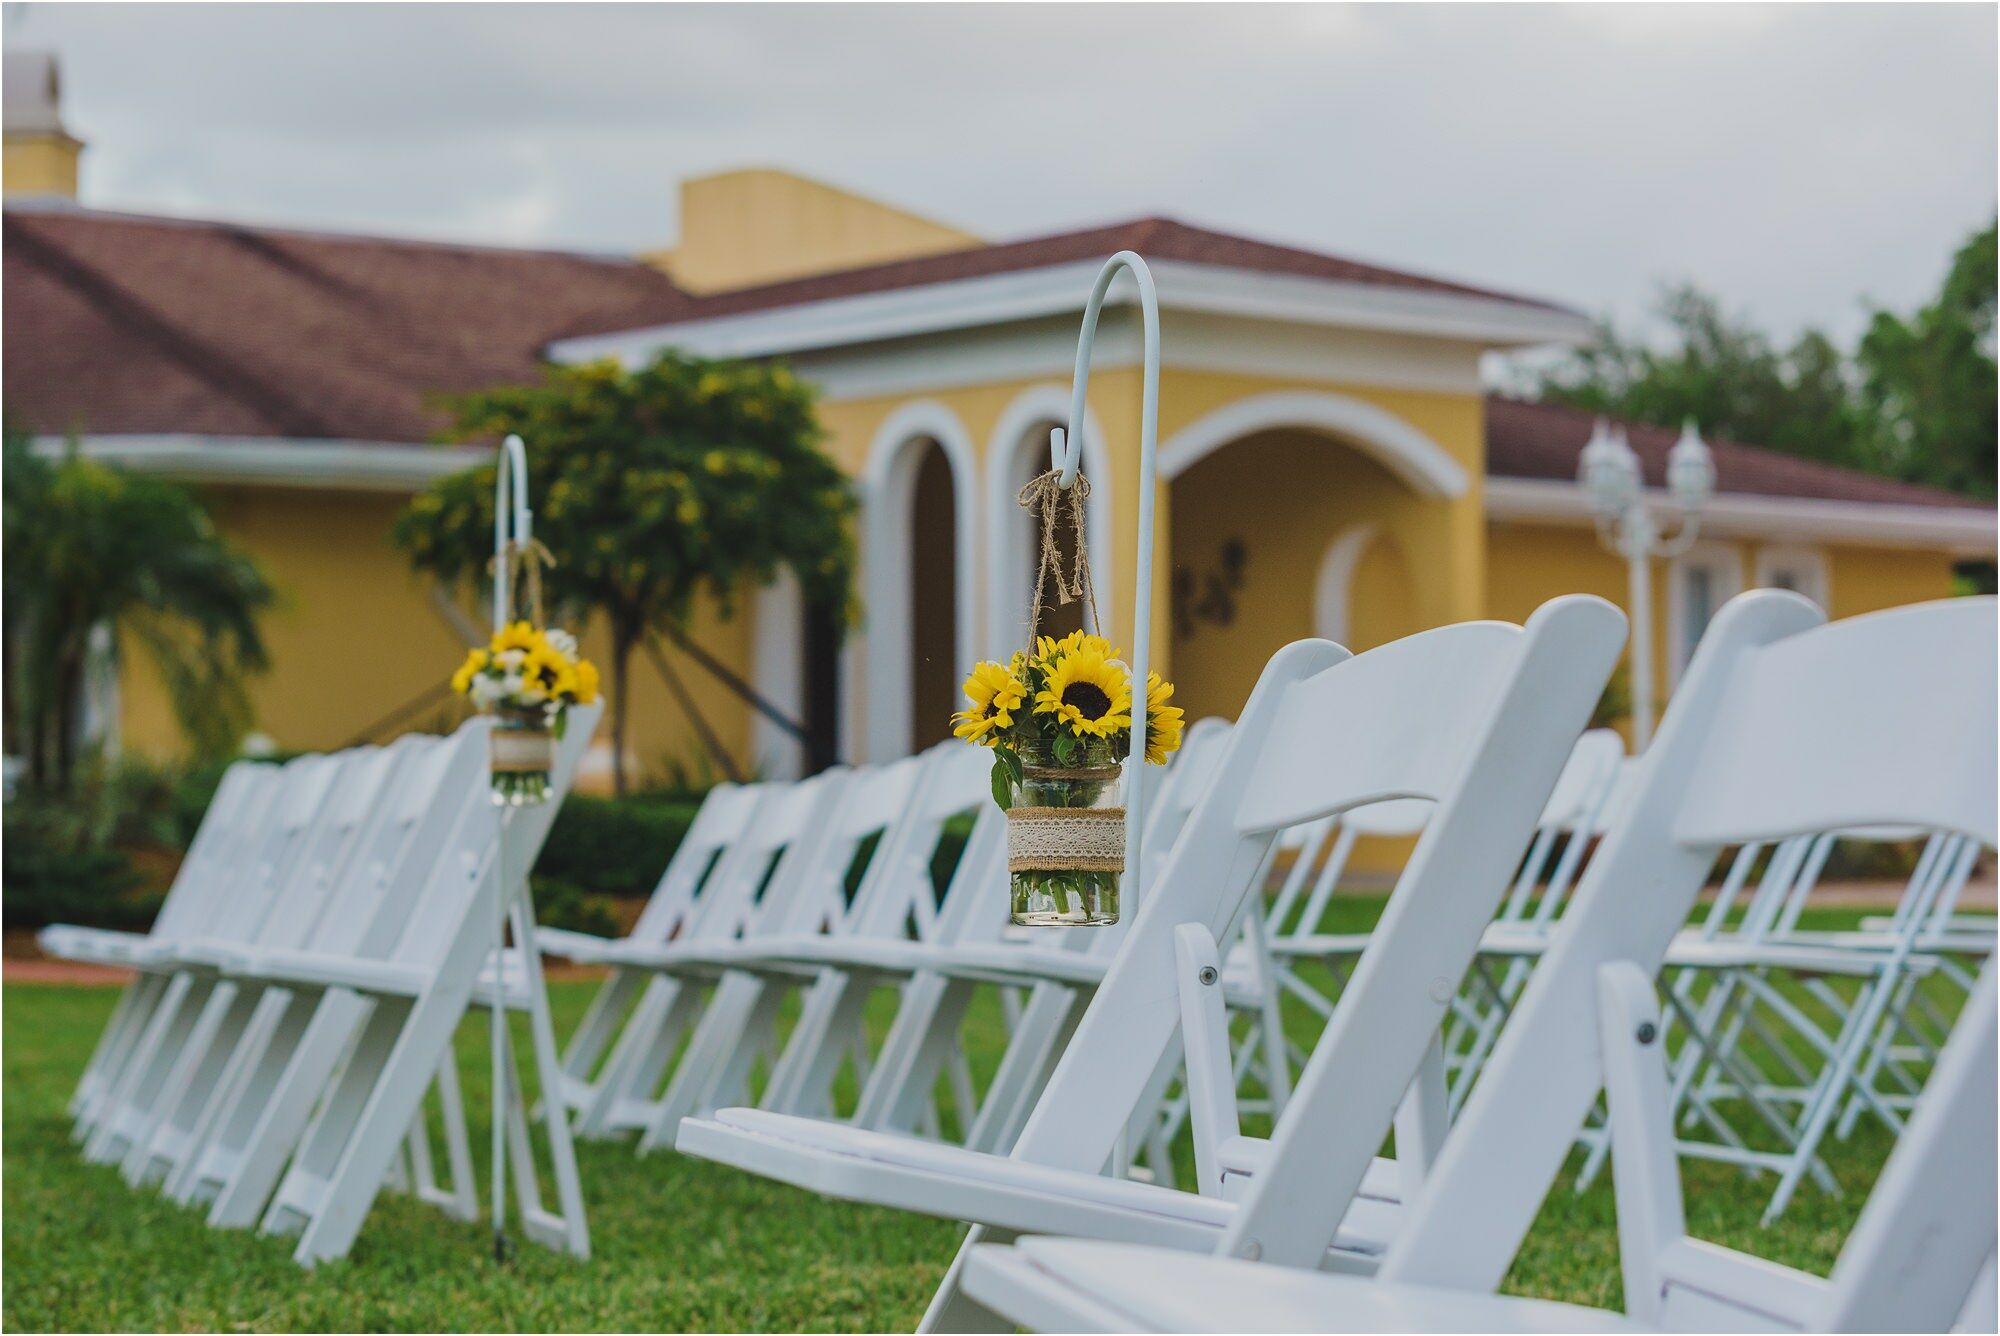 Ceremony Venues - Homestead, FL